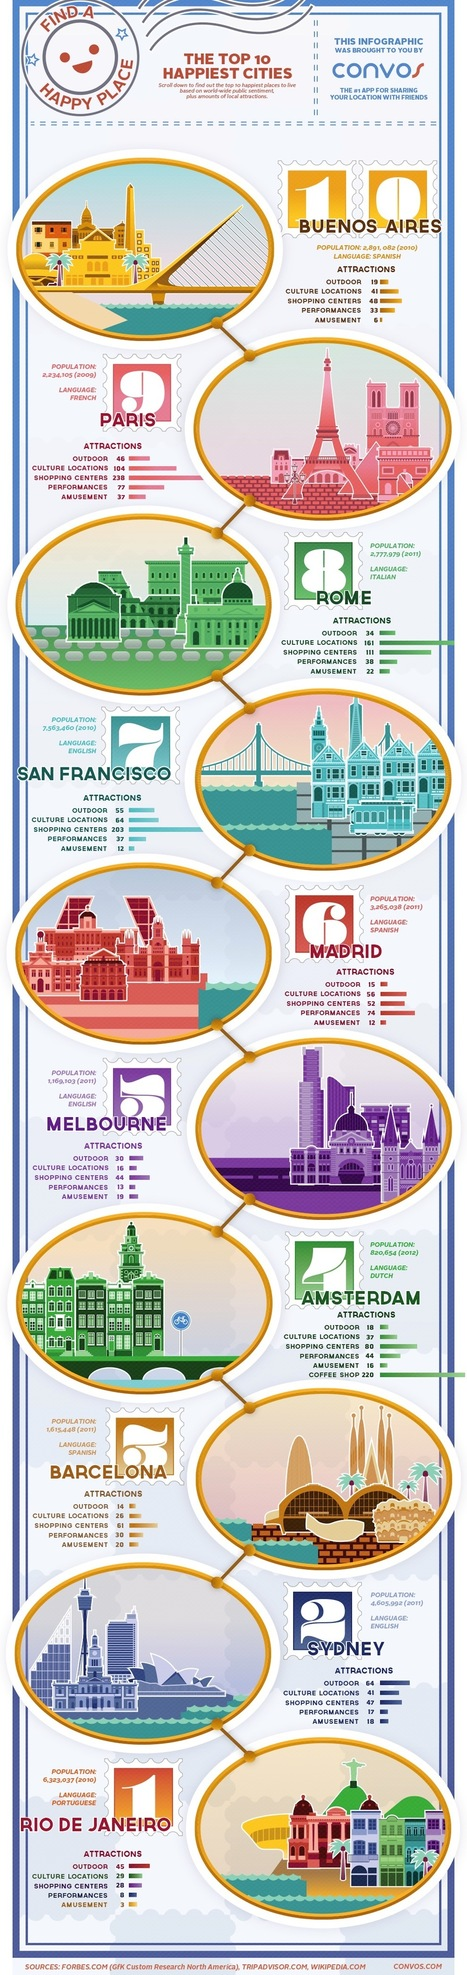 The Happiest Cities in the World [Infographic] | Social Mercor | Scoop.it